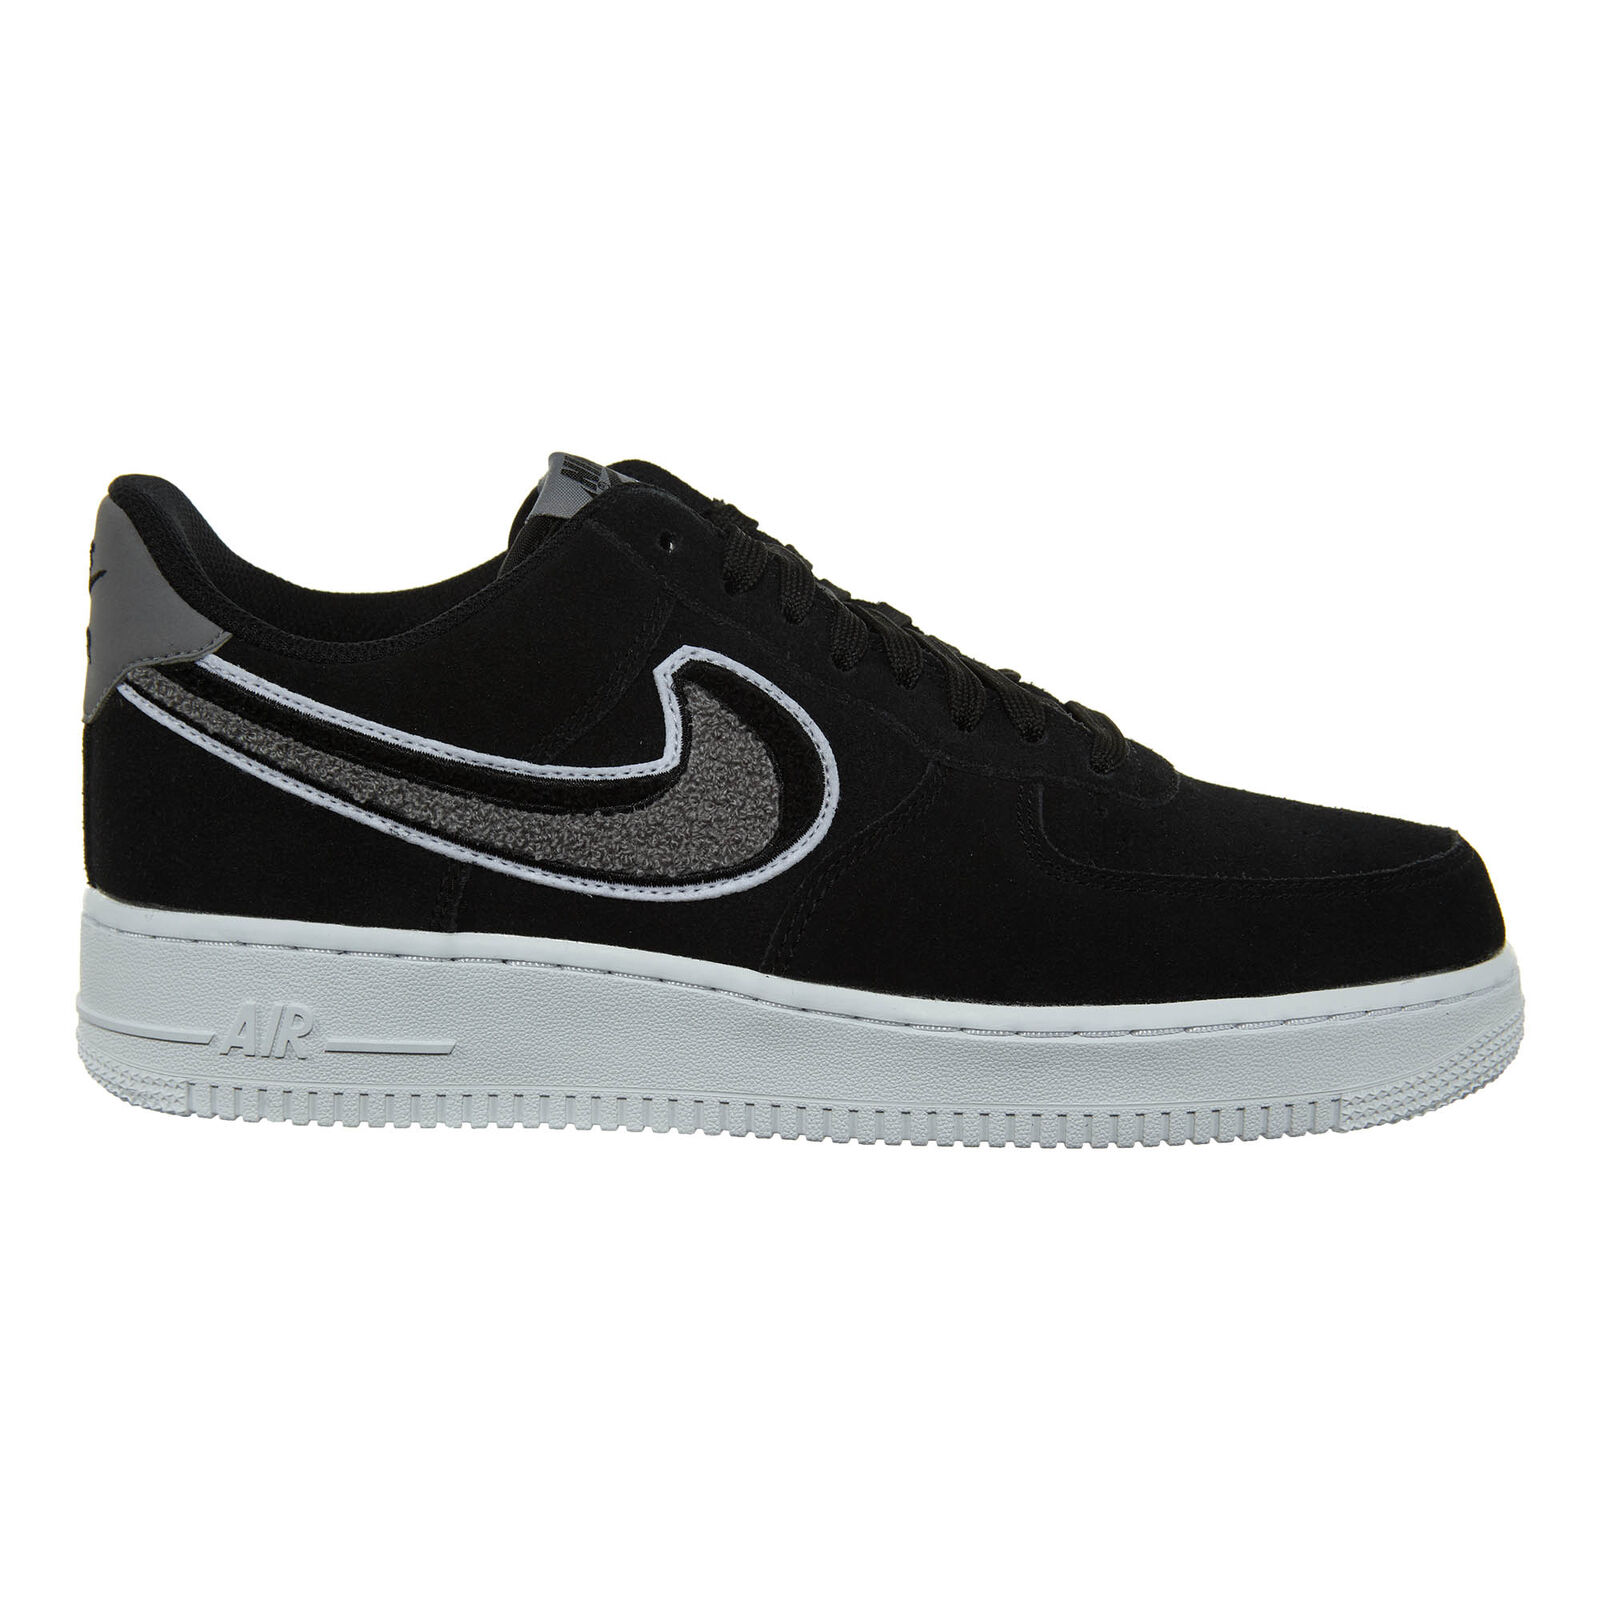 Nike Air Force 1 '07 LV8 Chenille Swoosh Mens 823511-014 Black Shoes Comfortable The most popular shoes for men and women